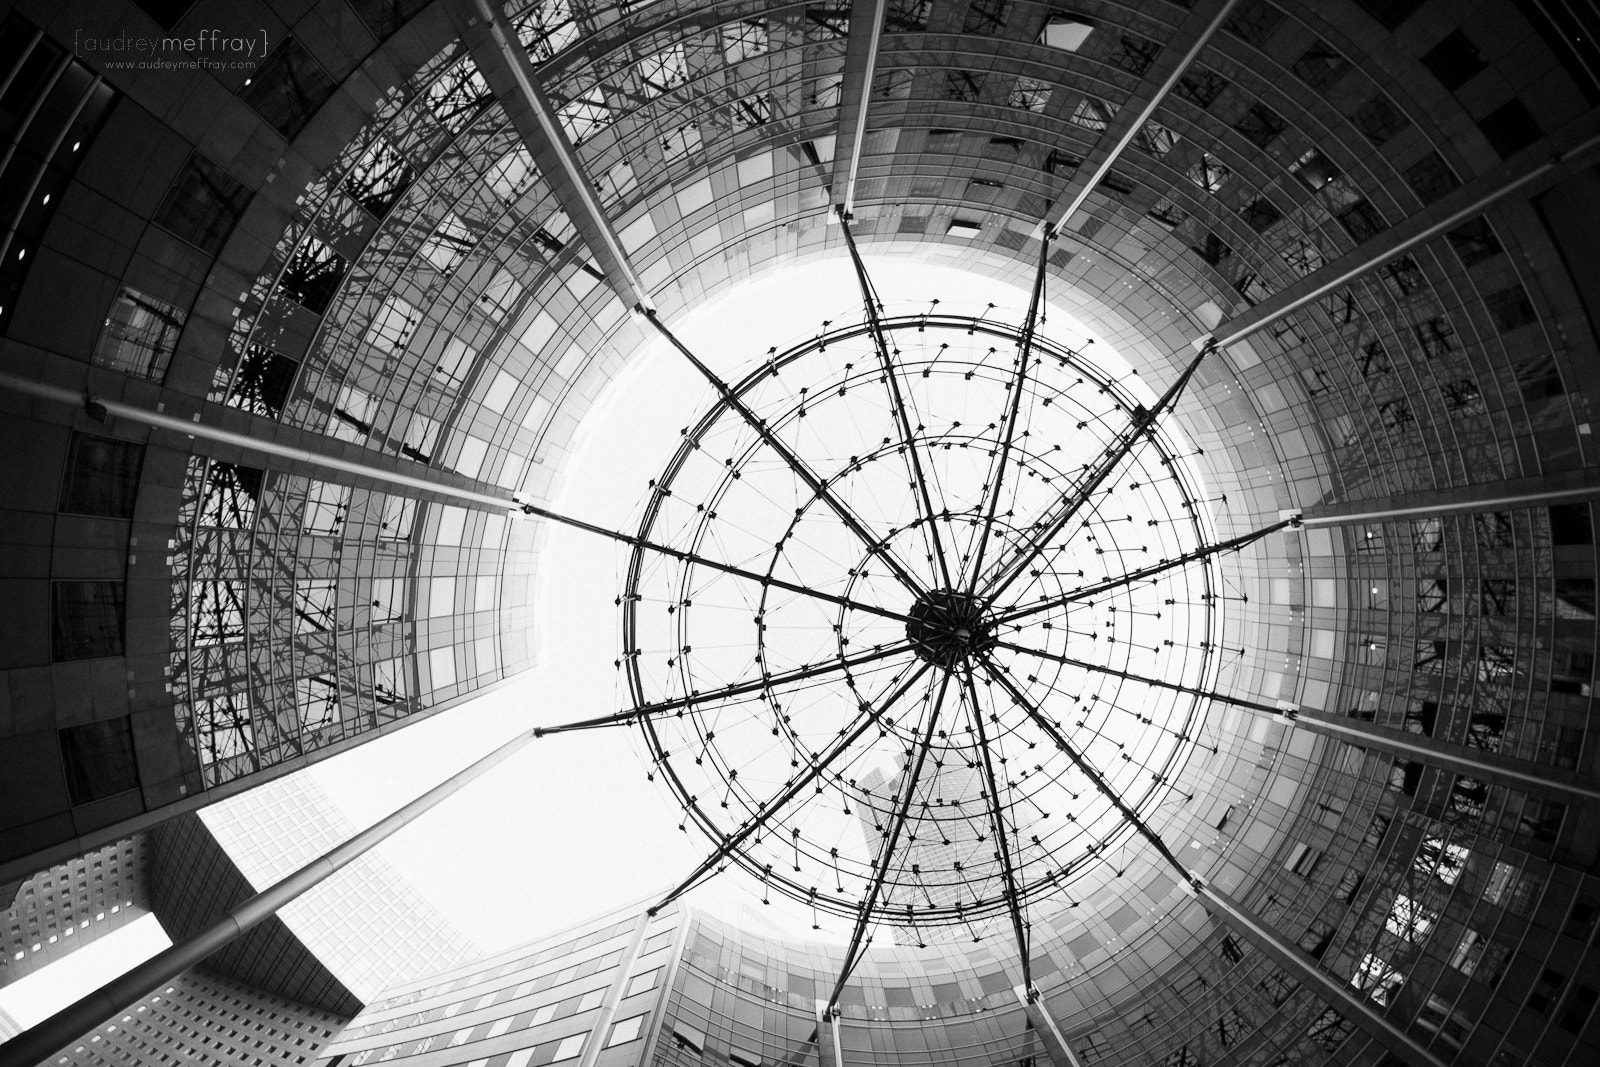 Photograph {circles} by Audrey Meffray on 500px